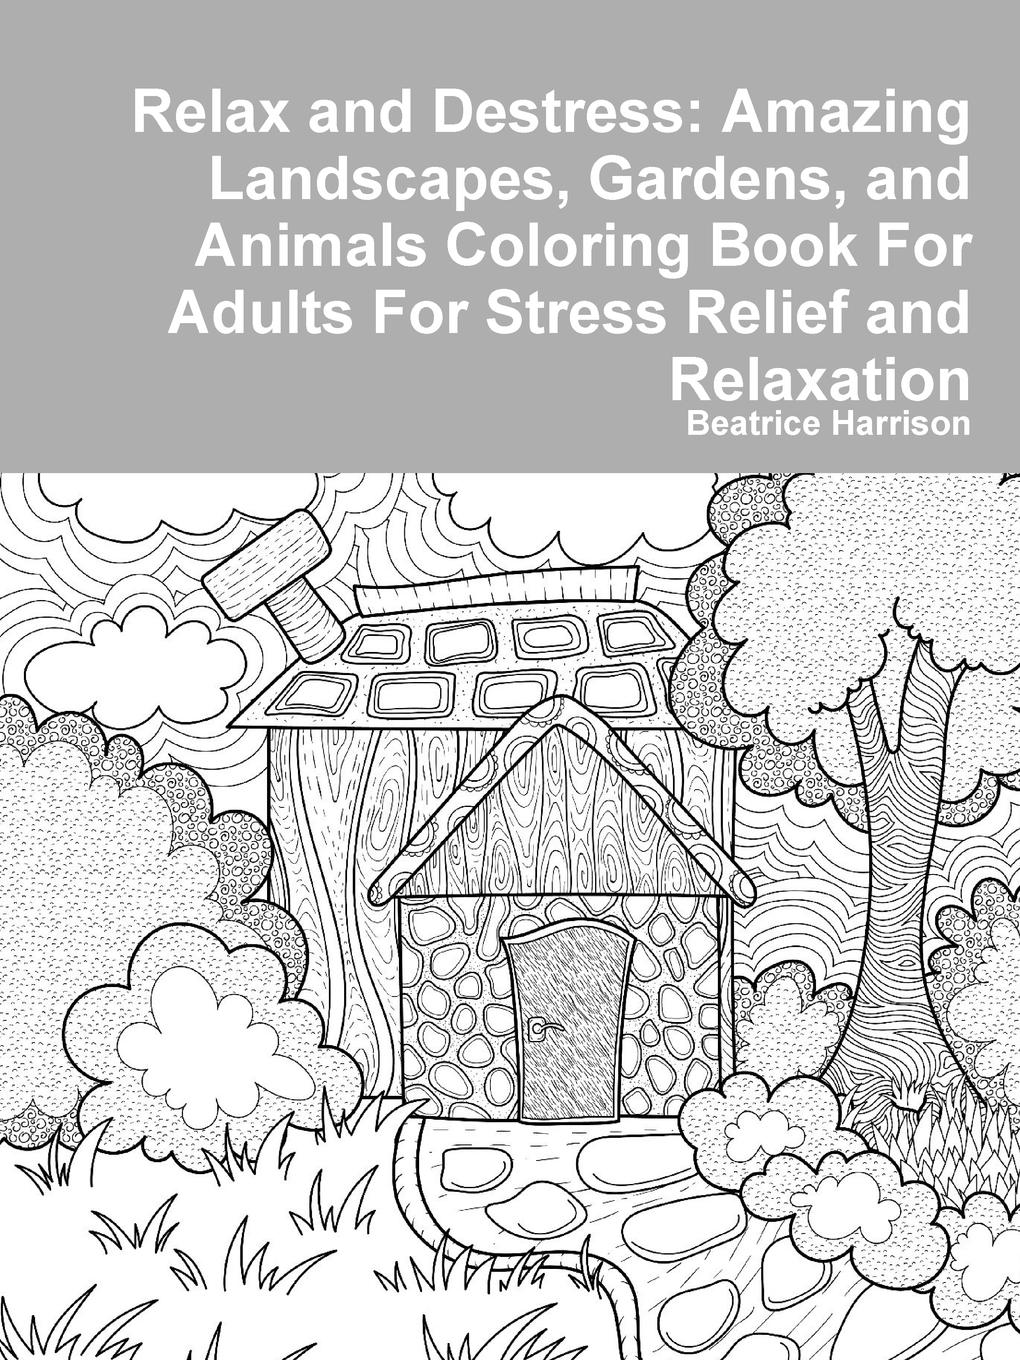 Beatrice Harrison Relax and Destress. Amazing Landscapes, Gardens, and Animals Coloring Book For Adults For Stress Relief and Relaxation marion harney gardens and landscapes in historic building conservation